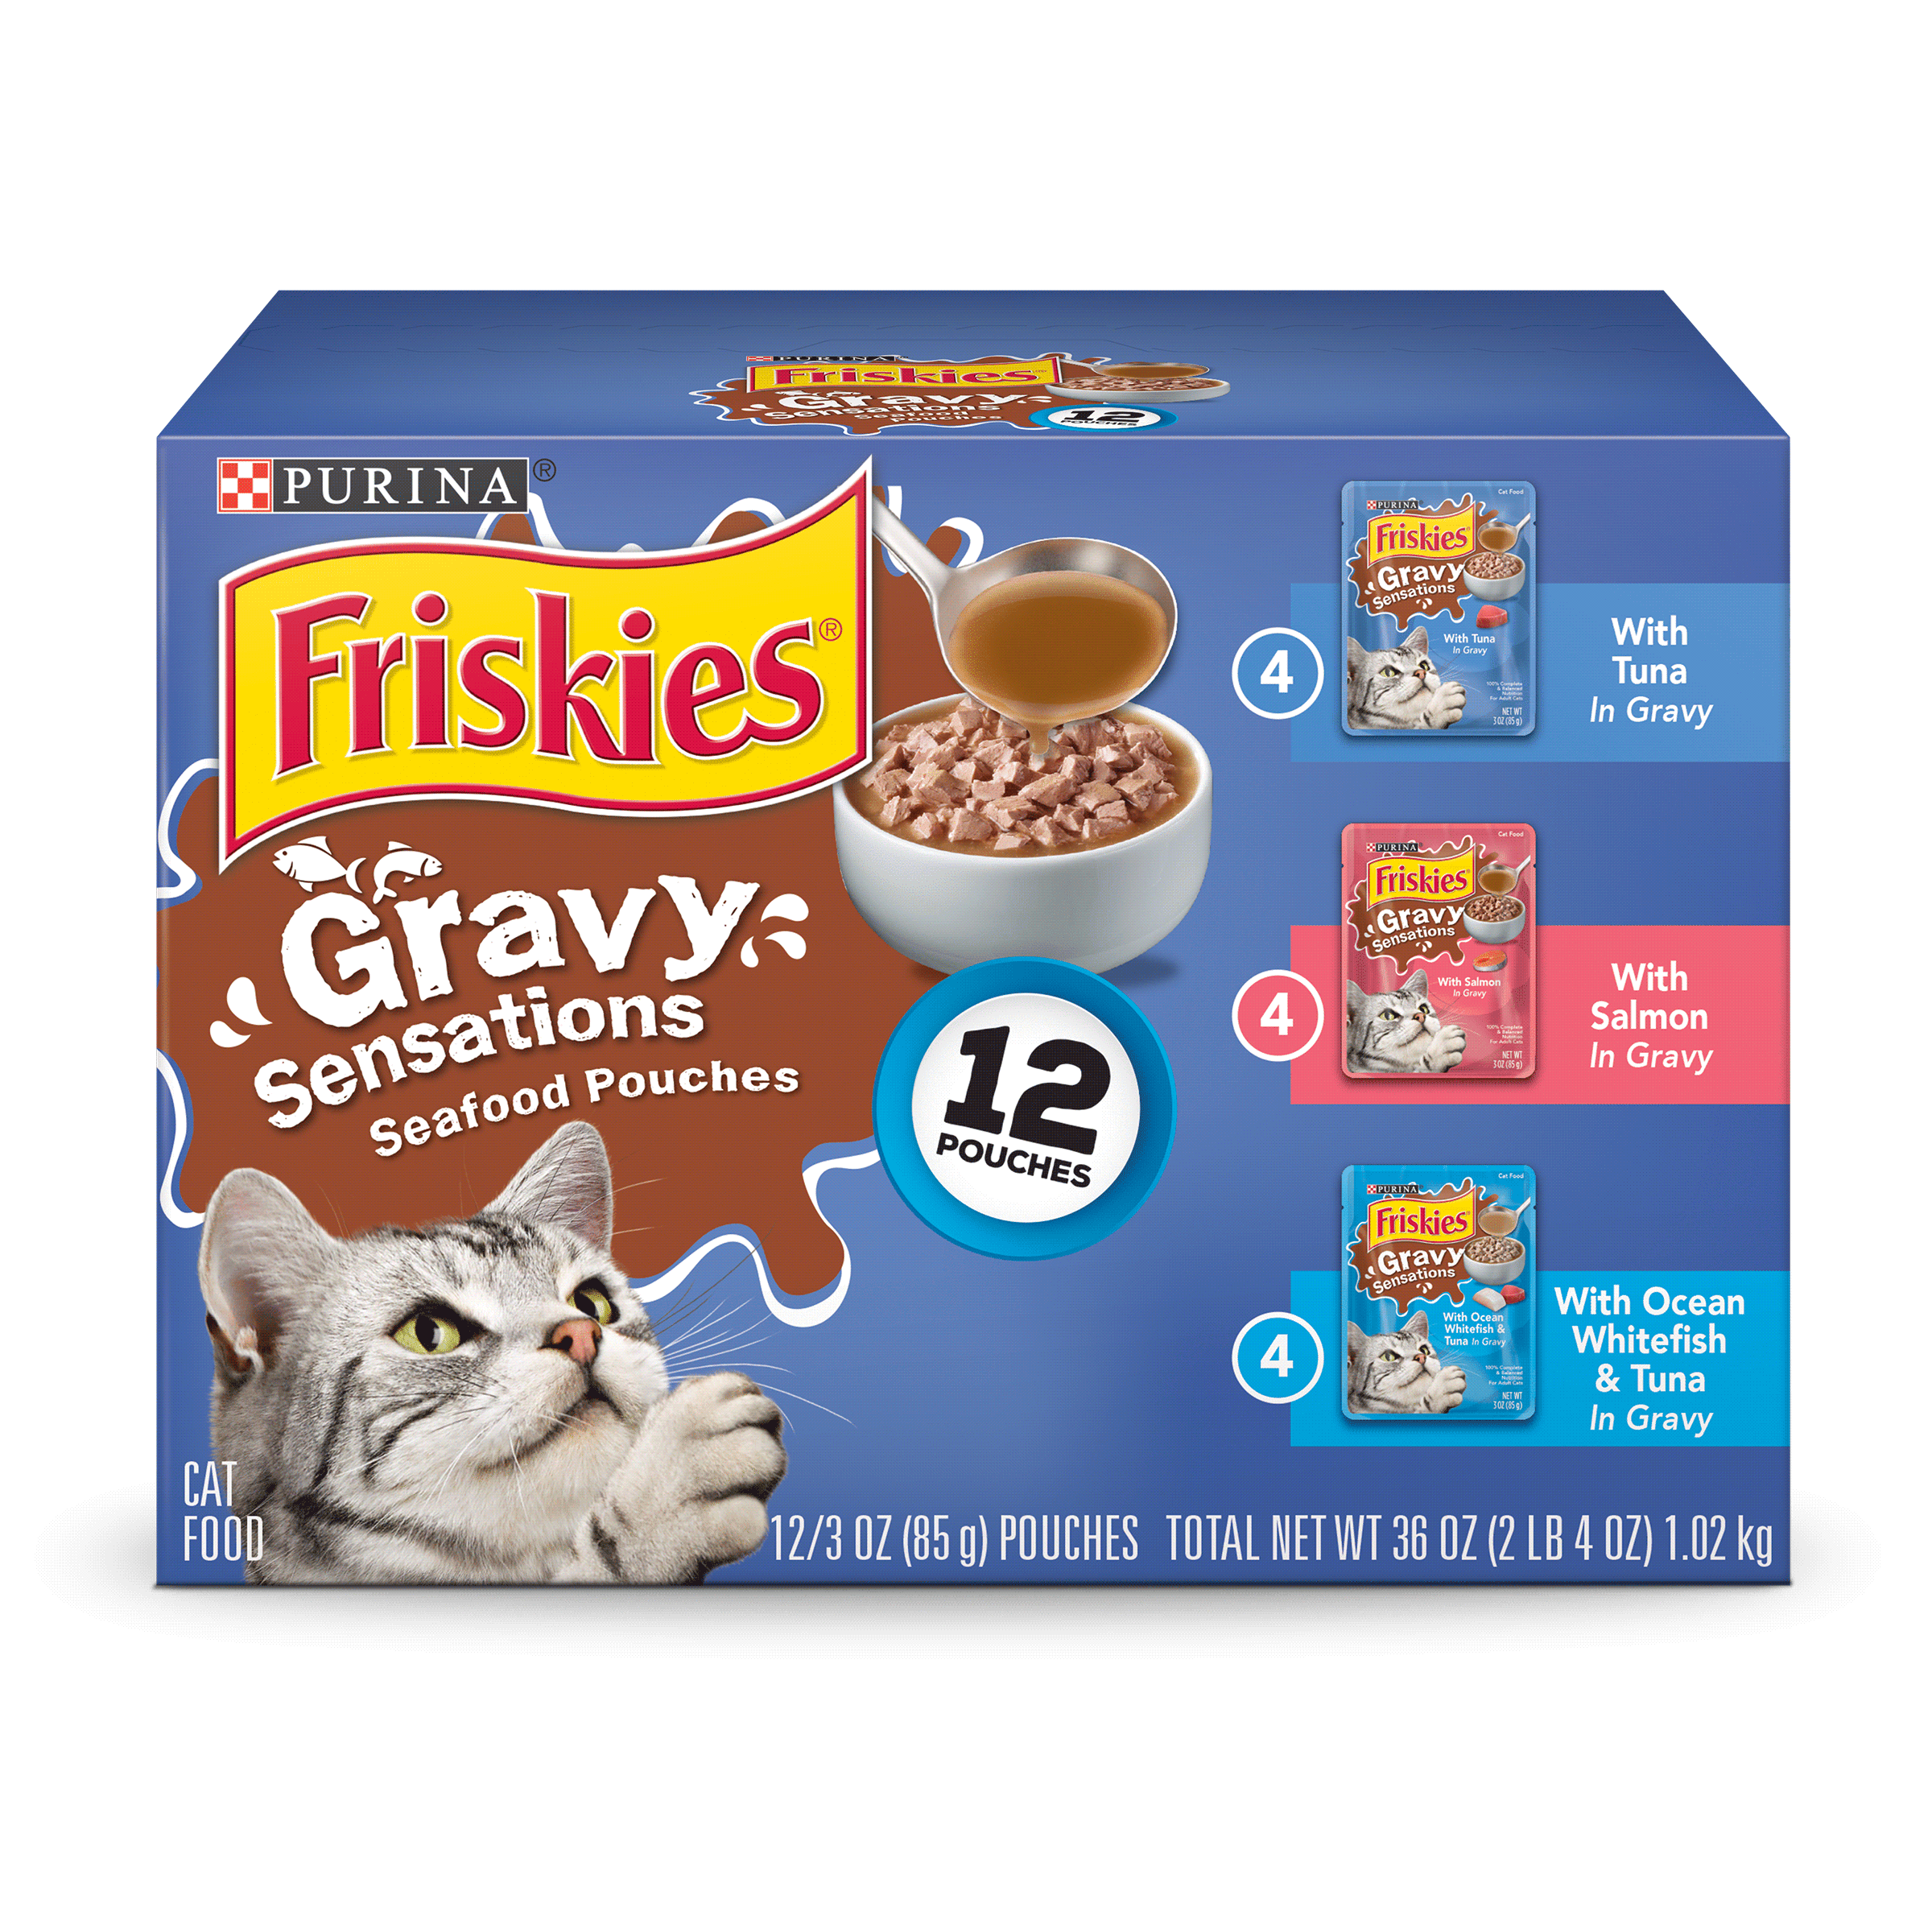 Purina Friskies Gravy Sensations Poultry Favorites Wet Cat Food Variety Pack 12 3 Oz Pouches